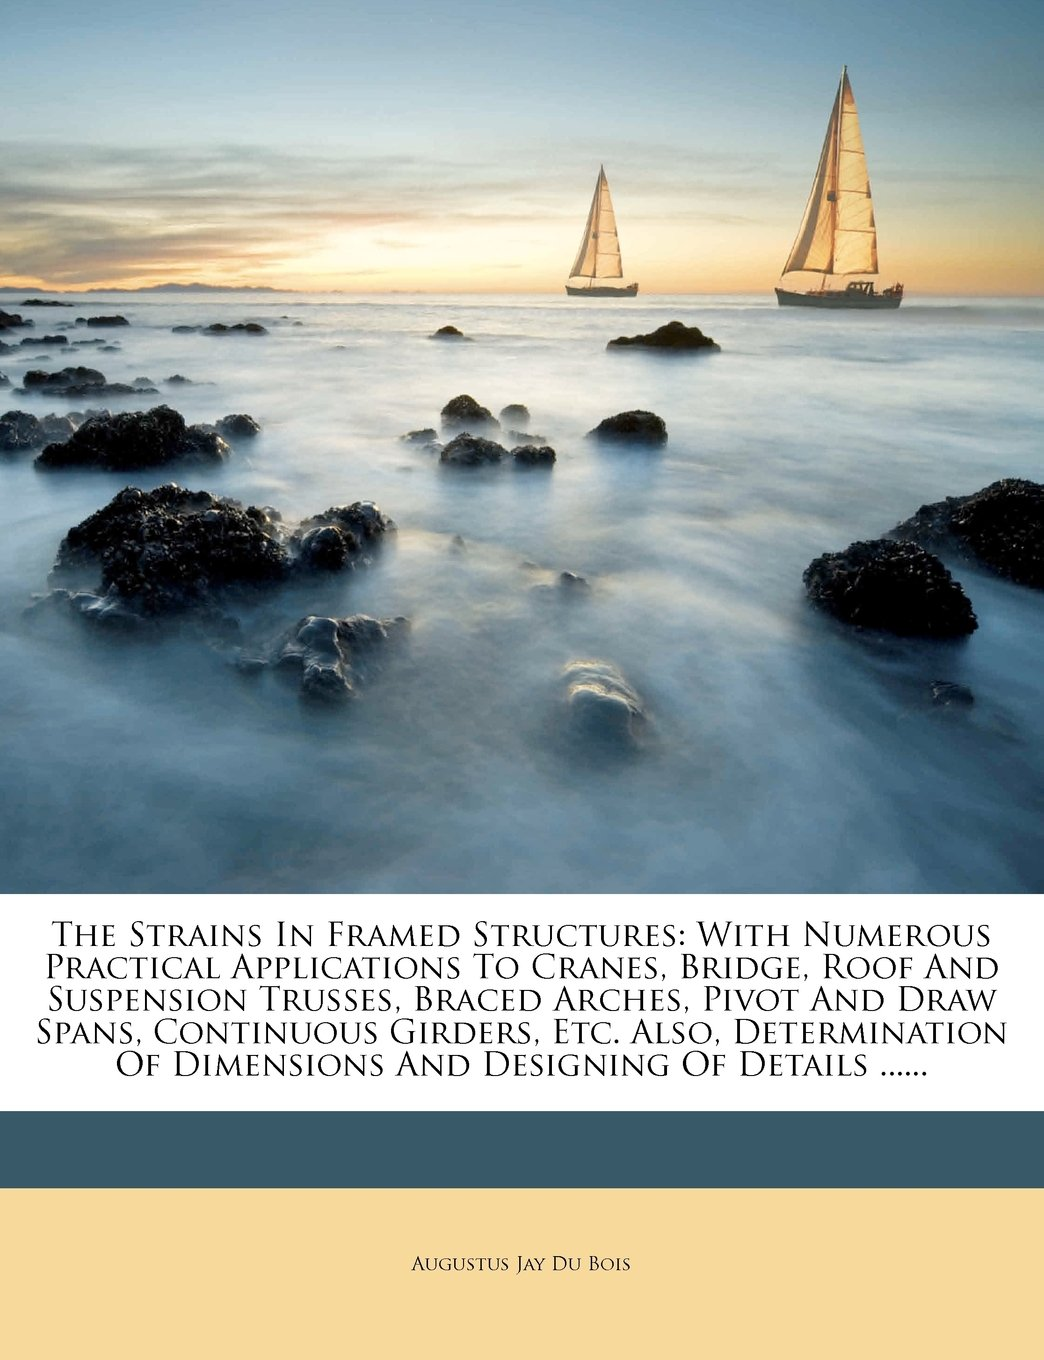 Download The Strains In Framed Structures: With Numerous Practical Applications To Cranes, Bridge, Roof And Suspension Trusses, Braced Arches, Pivot And Draw ... Of Dimensions And Designing Of Details ...... pdf